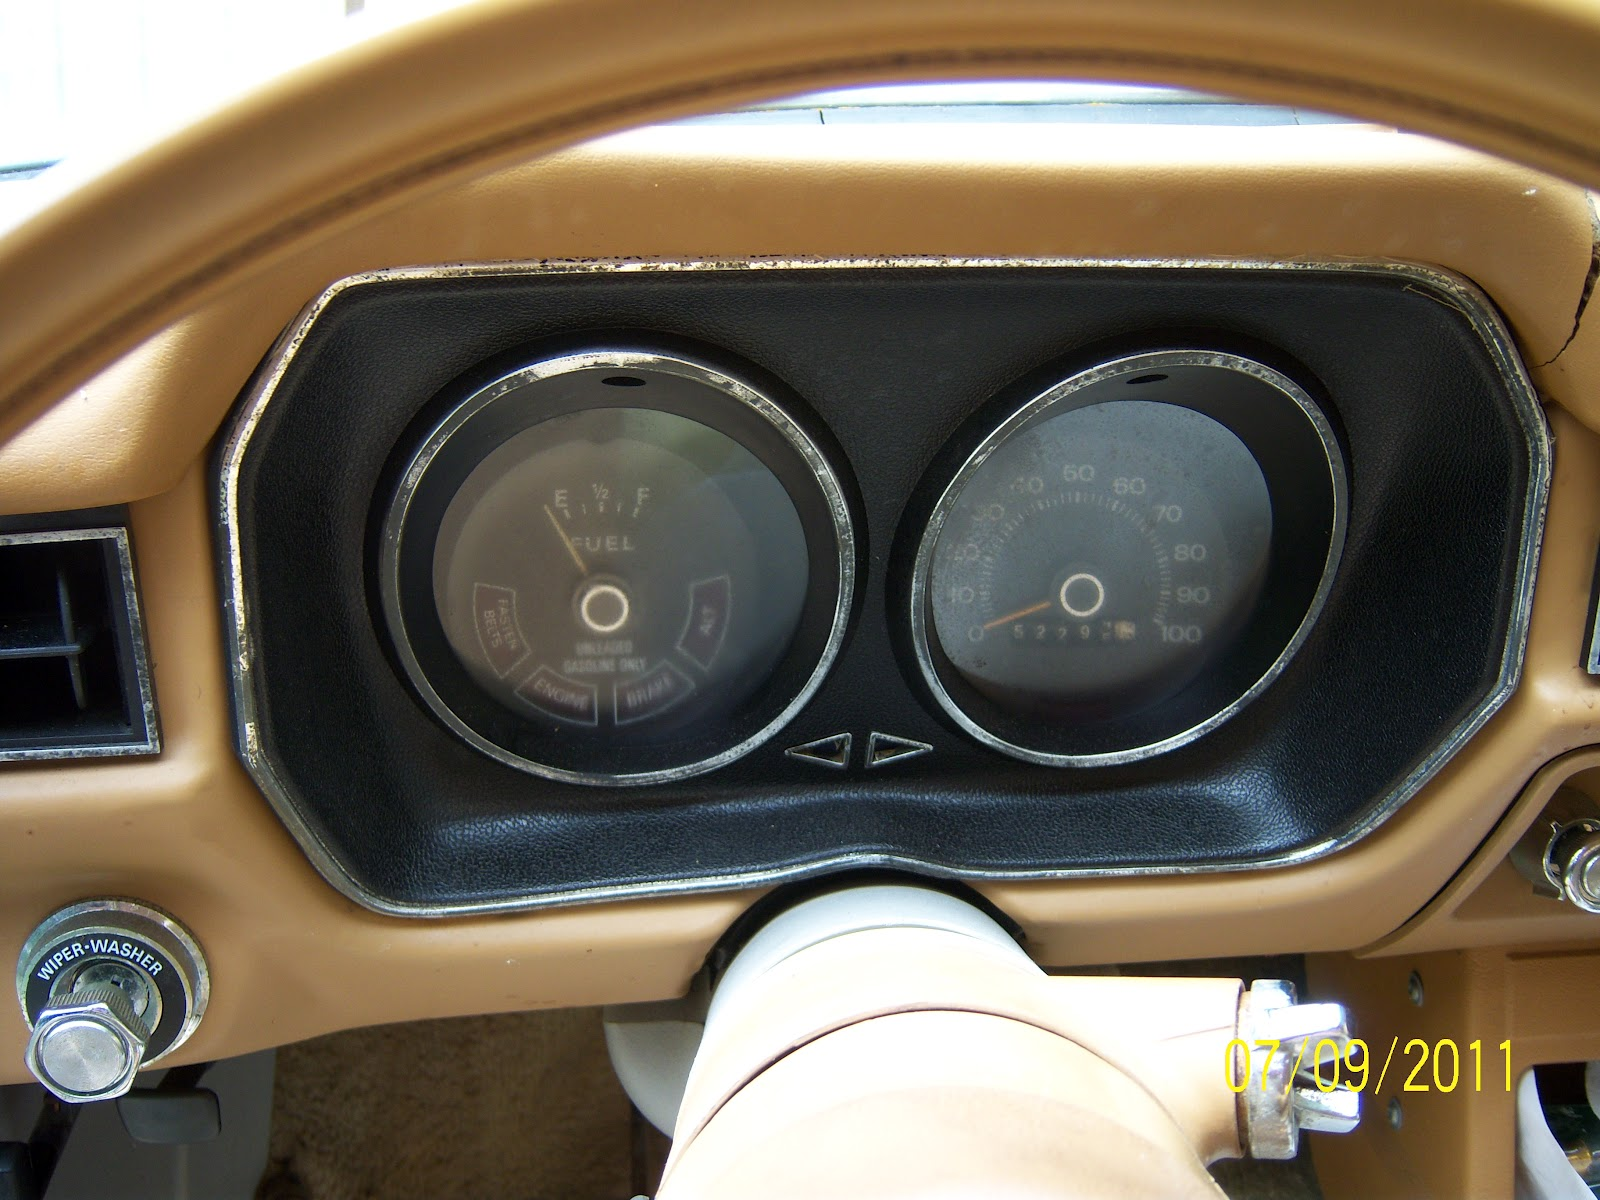 1976 Ford Pinto: Refurbish Instrument cluster on 1976 Ford Pinto